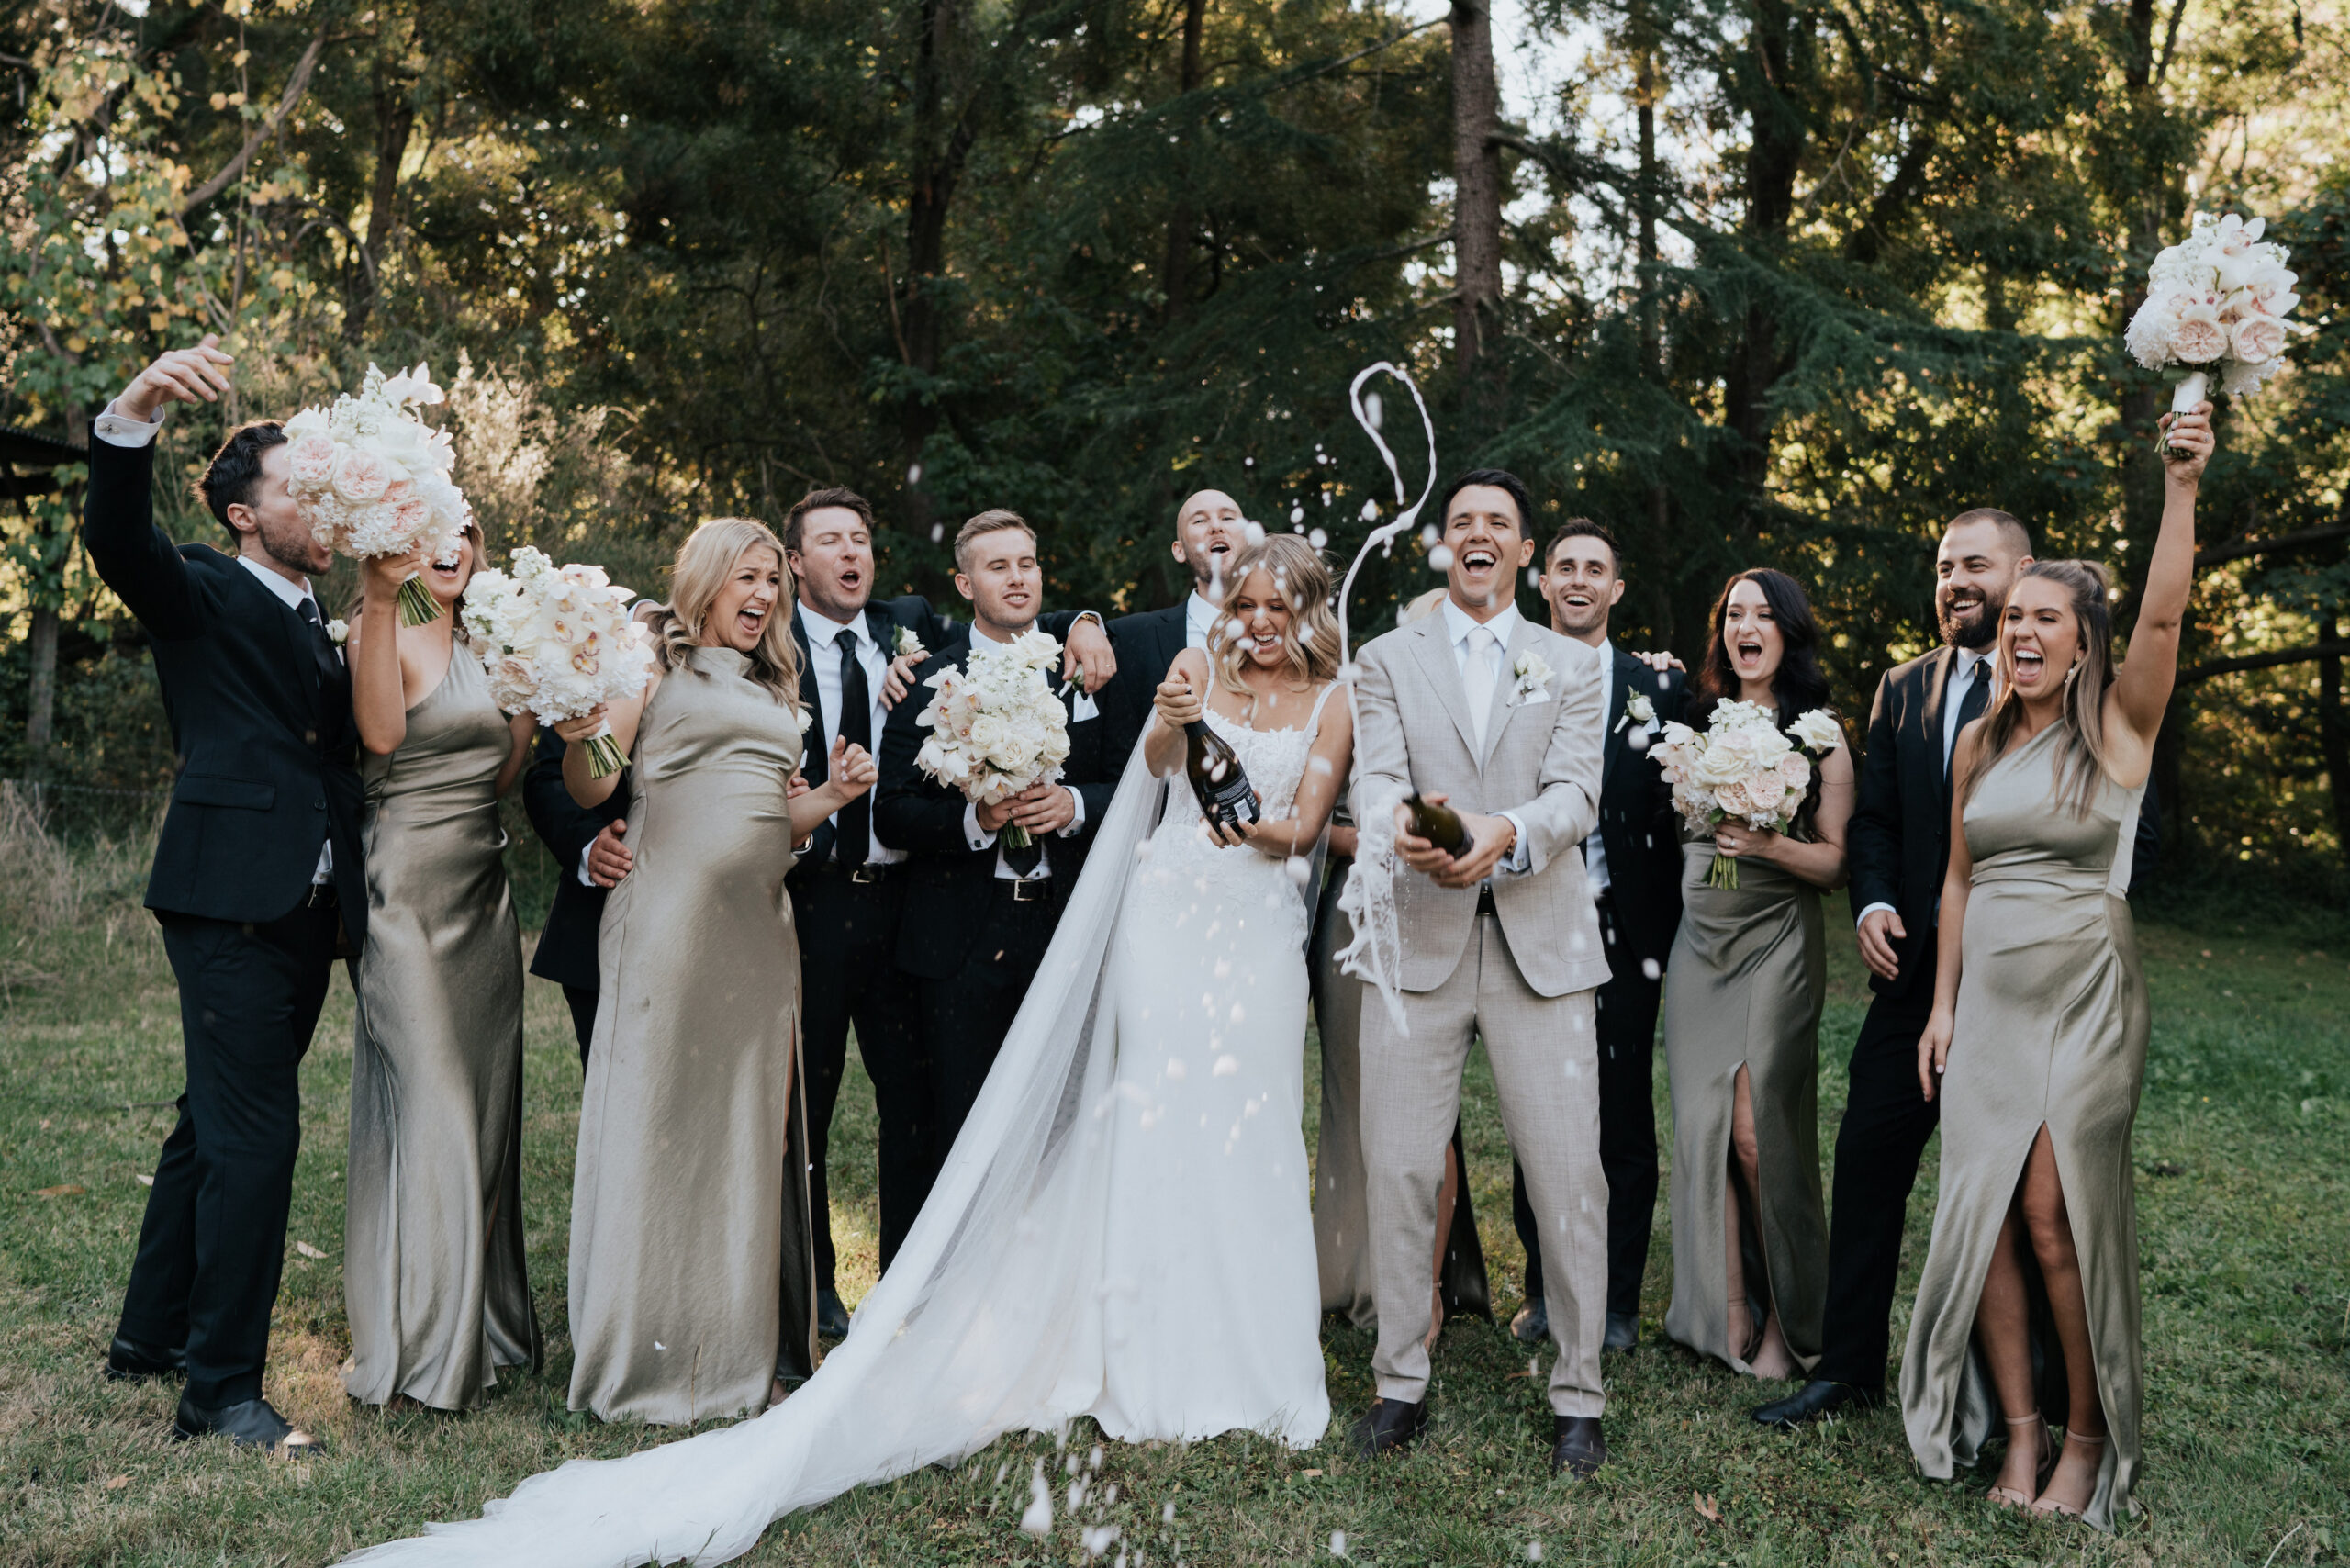 Bridal party popping champagne